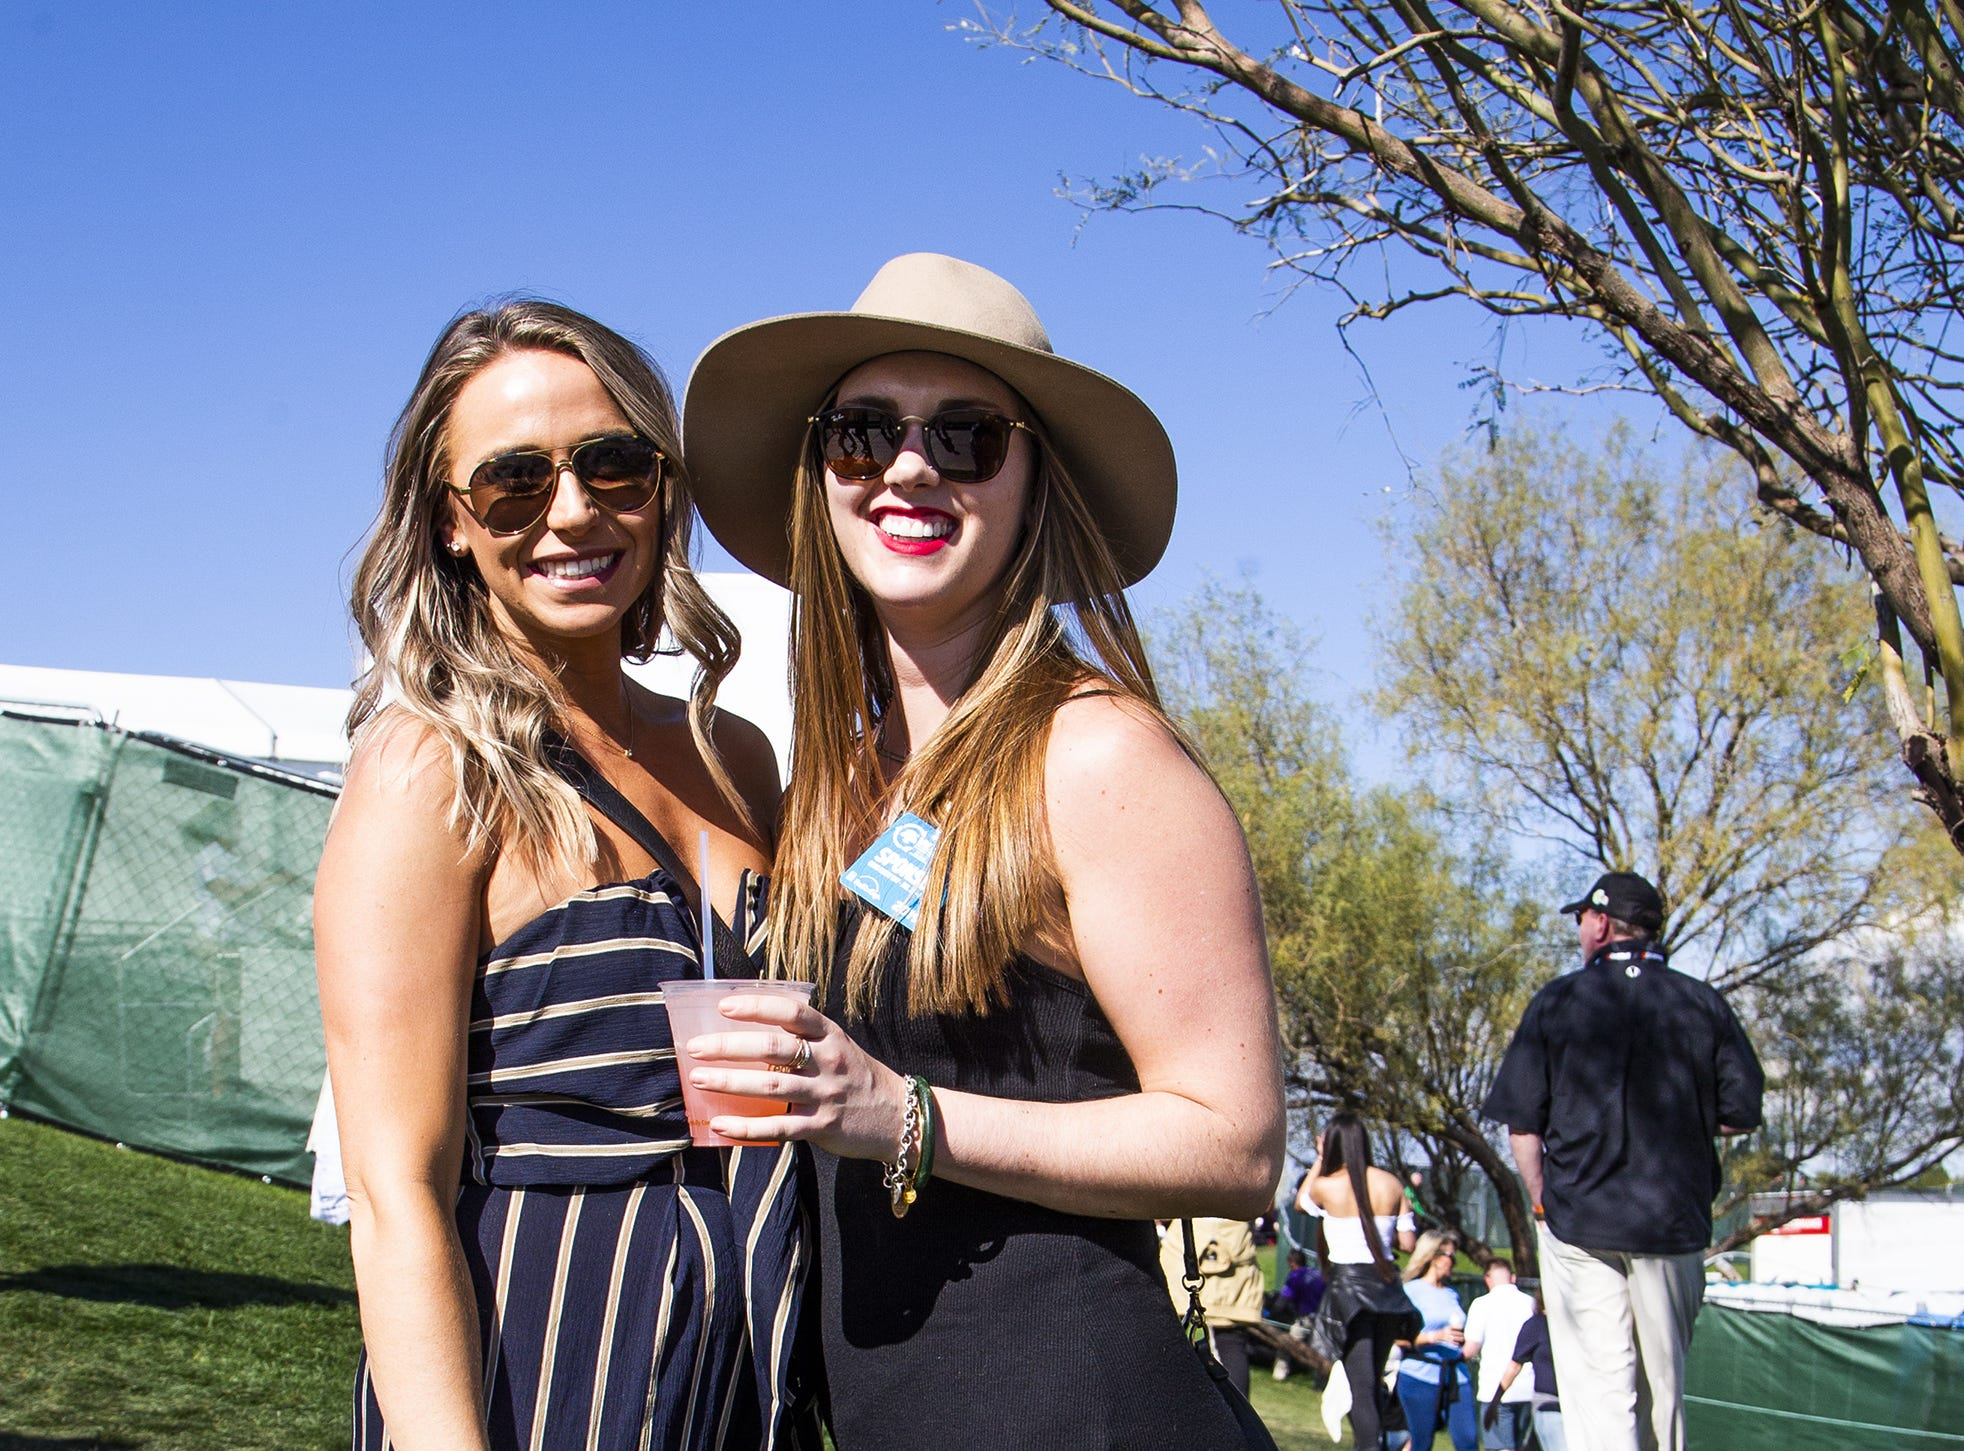 Kristi Pedersen, left, and Erin Vanderwall, both 26, dress to impress during the second round of the Waste Management Phoenix Open at the TPC Scottsdale, Friday, February 1, 2019.